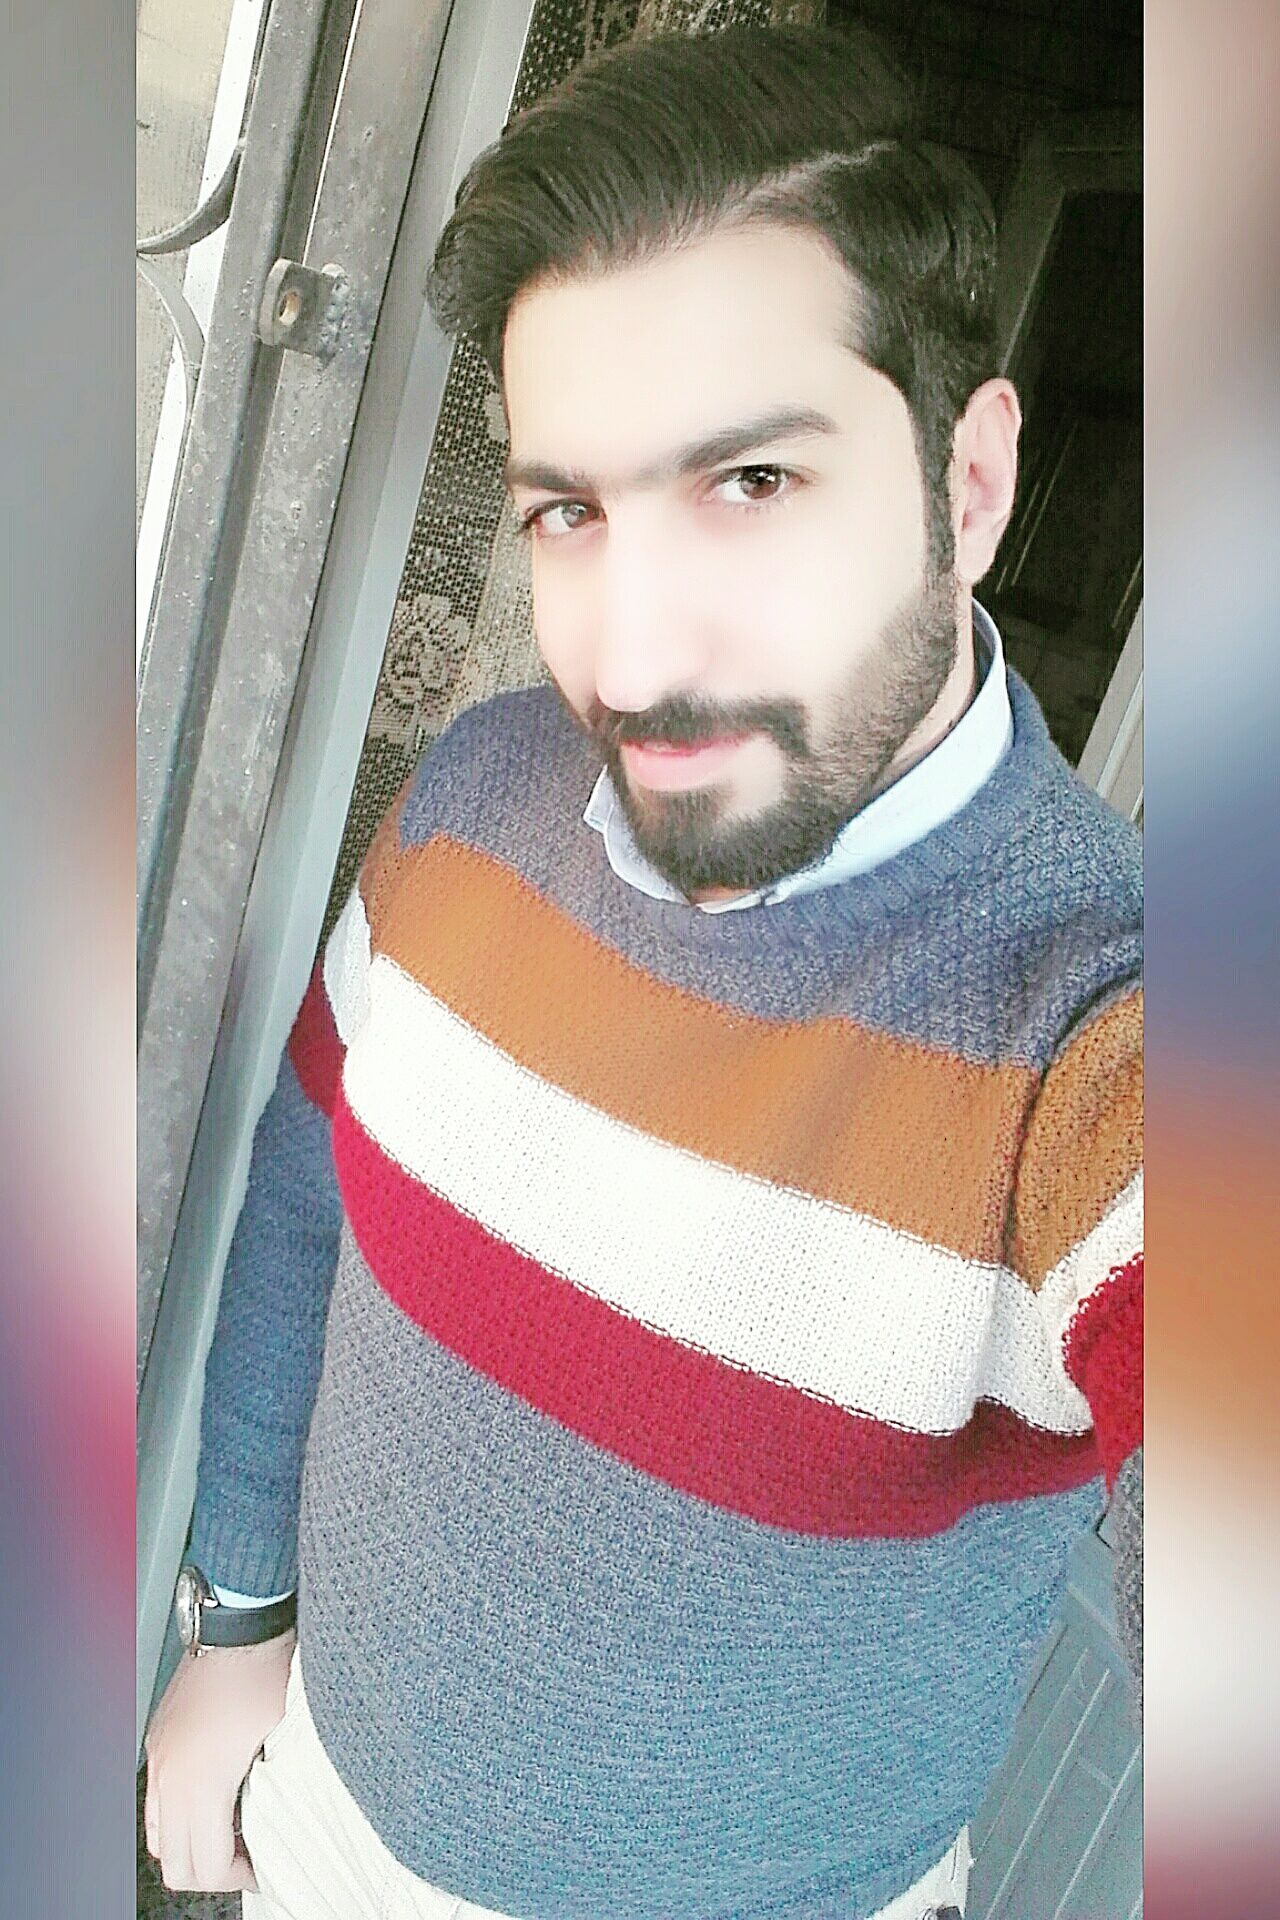 Only Men One Person Beard Portrait Adult Selfieday Looking At Camera Selfie ✌ Me Picture Black Hair Selfienation Focus On Foreground TBT  Nice Handsome Lifestyles Fashion Day The Fashionist - 2015 EyeEm Awards Awosome Self Portrait Around The World Like4like Beautiful Smiling